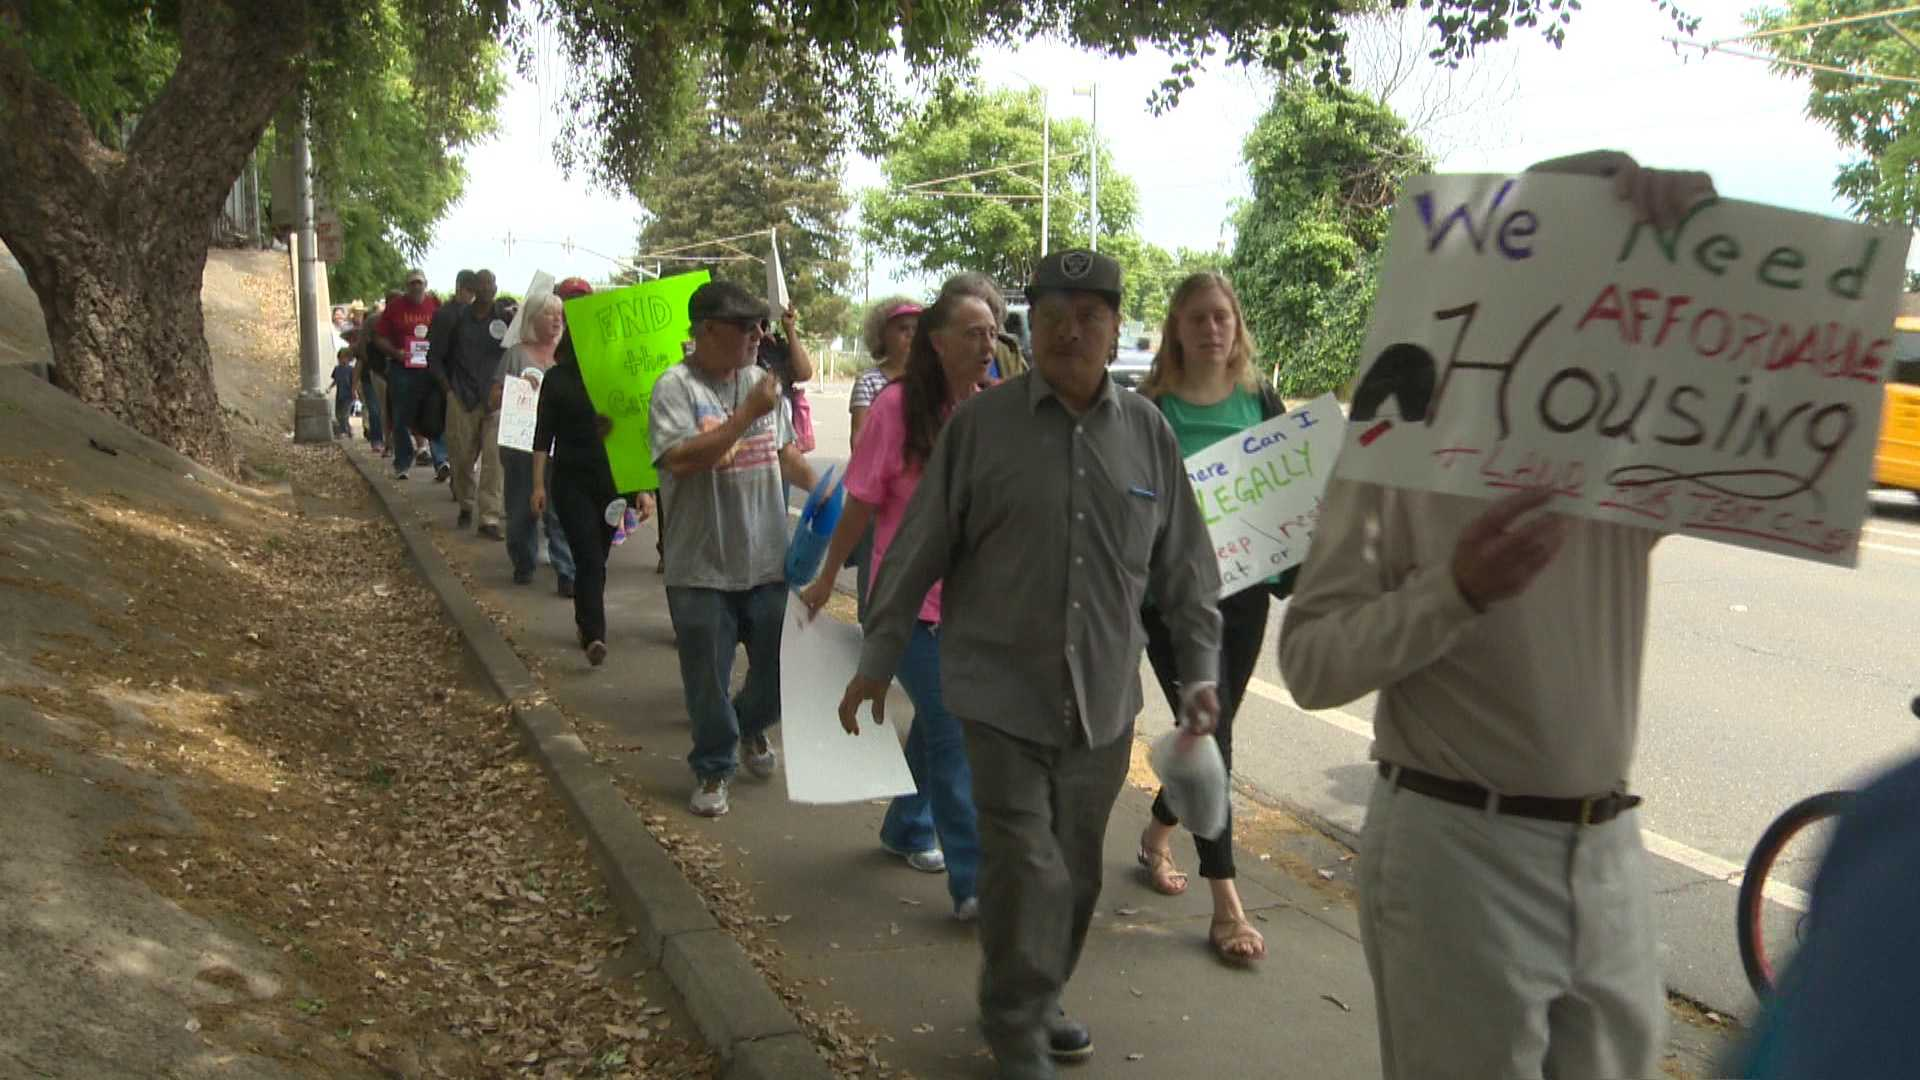 Homeless people and their supporters march along 12th Street in Sacramento.